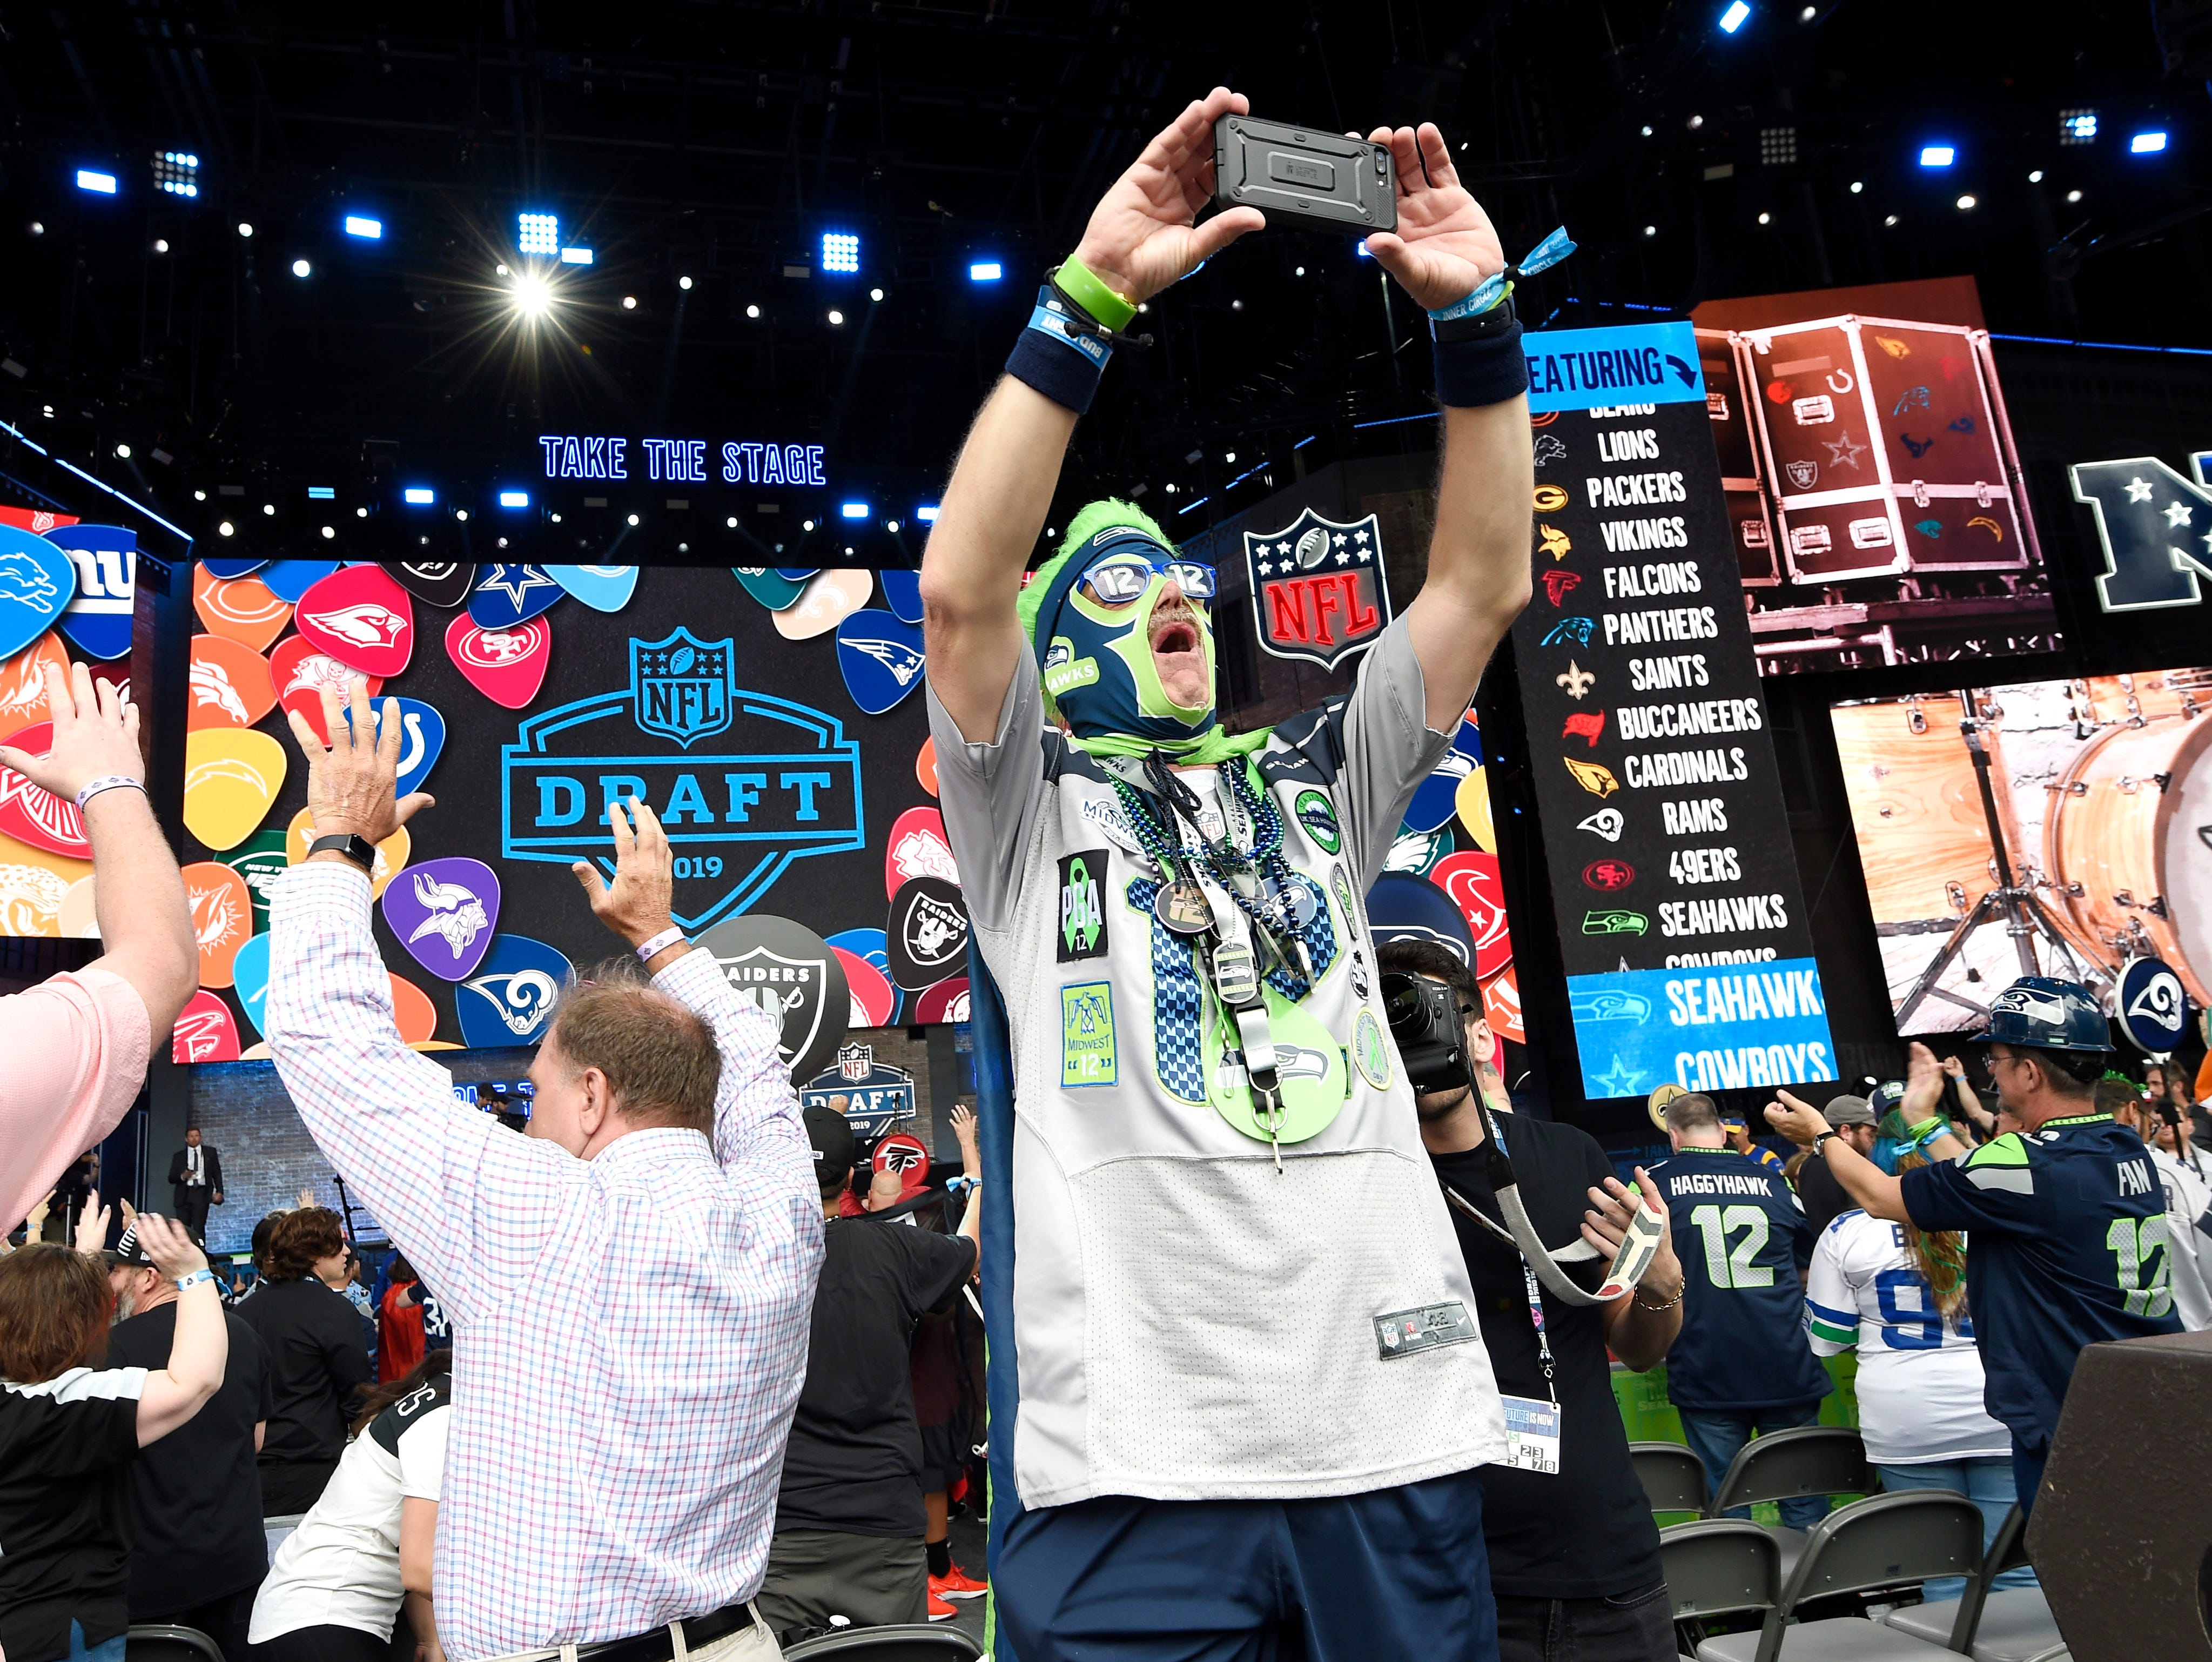 Seahawks fan Harold Cunningham of Springfield, Mo., takes a selfie before the start of the first round of the NFL Draft  Thursday, April 25, 2019 in Nashville, Tenn.